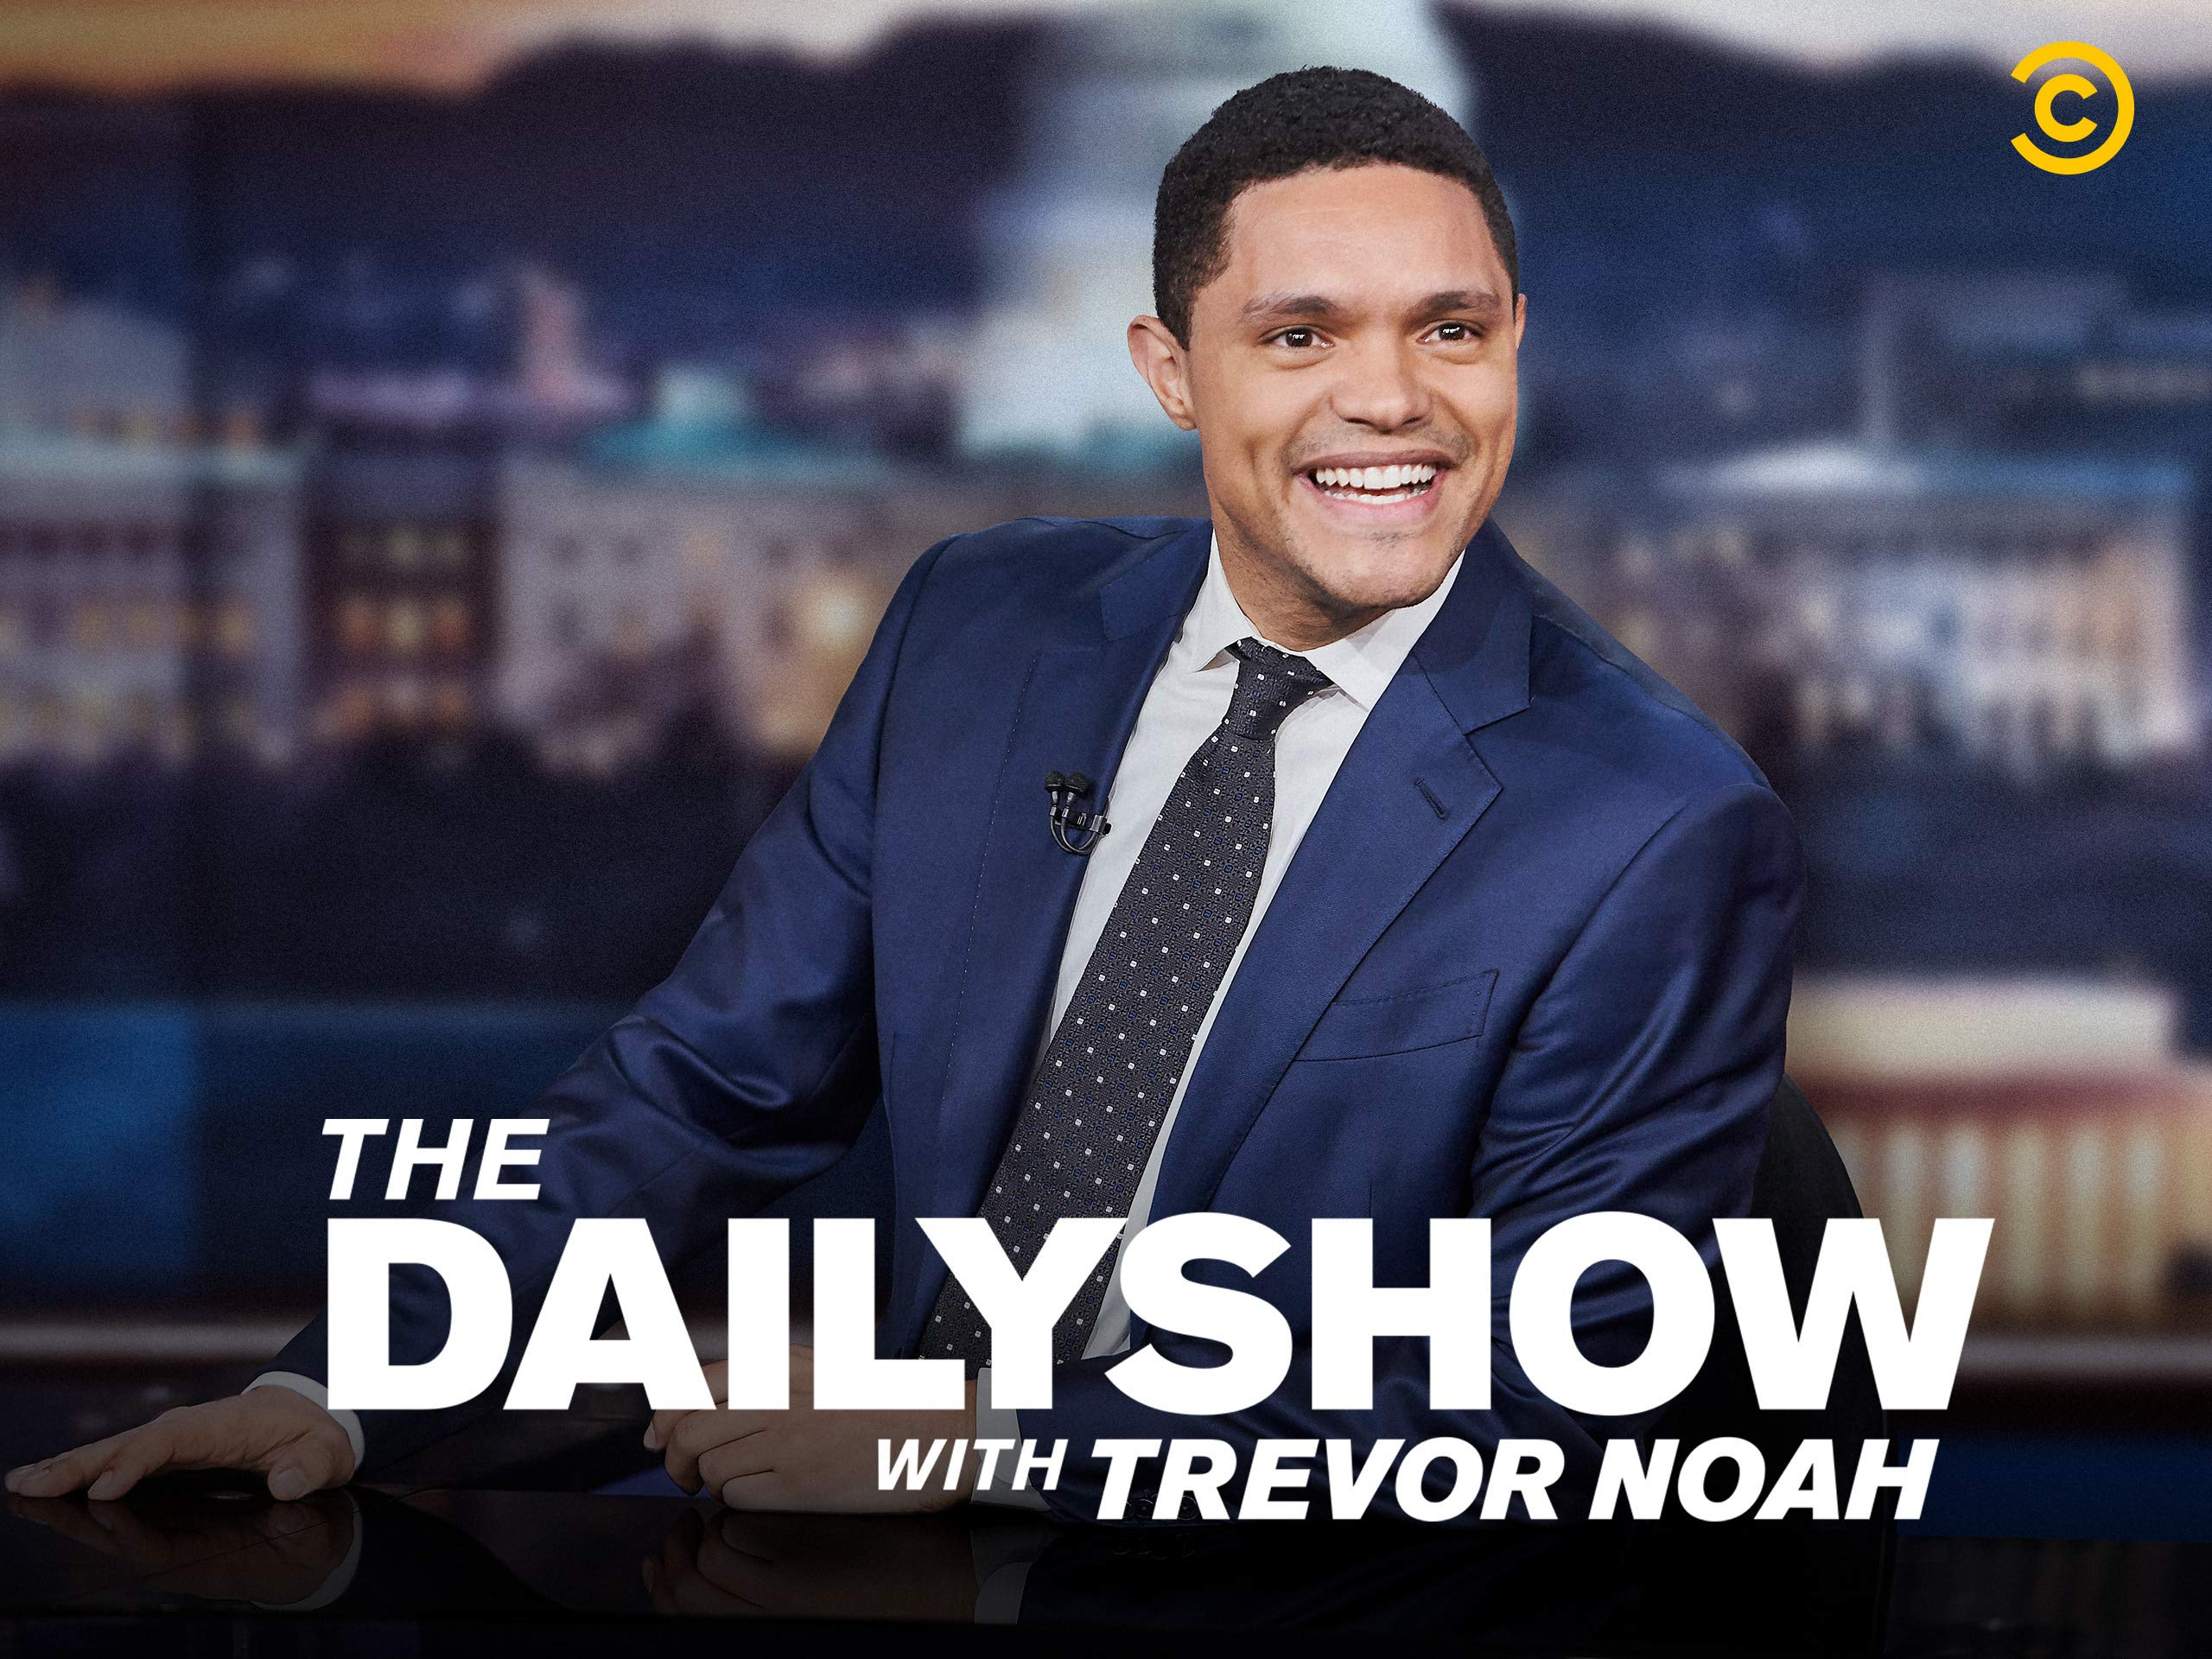 Watch The Daily Show with Trevor Noah Season 26 | Prime Video